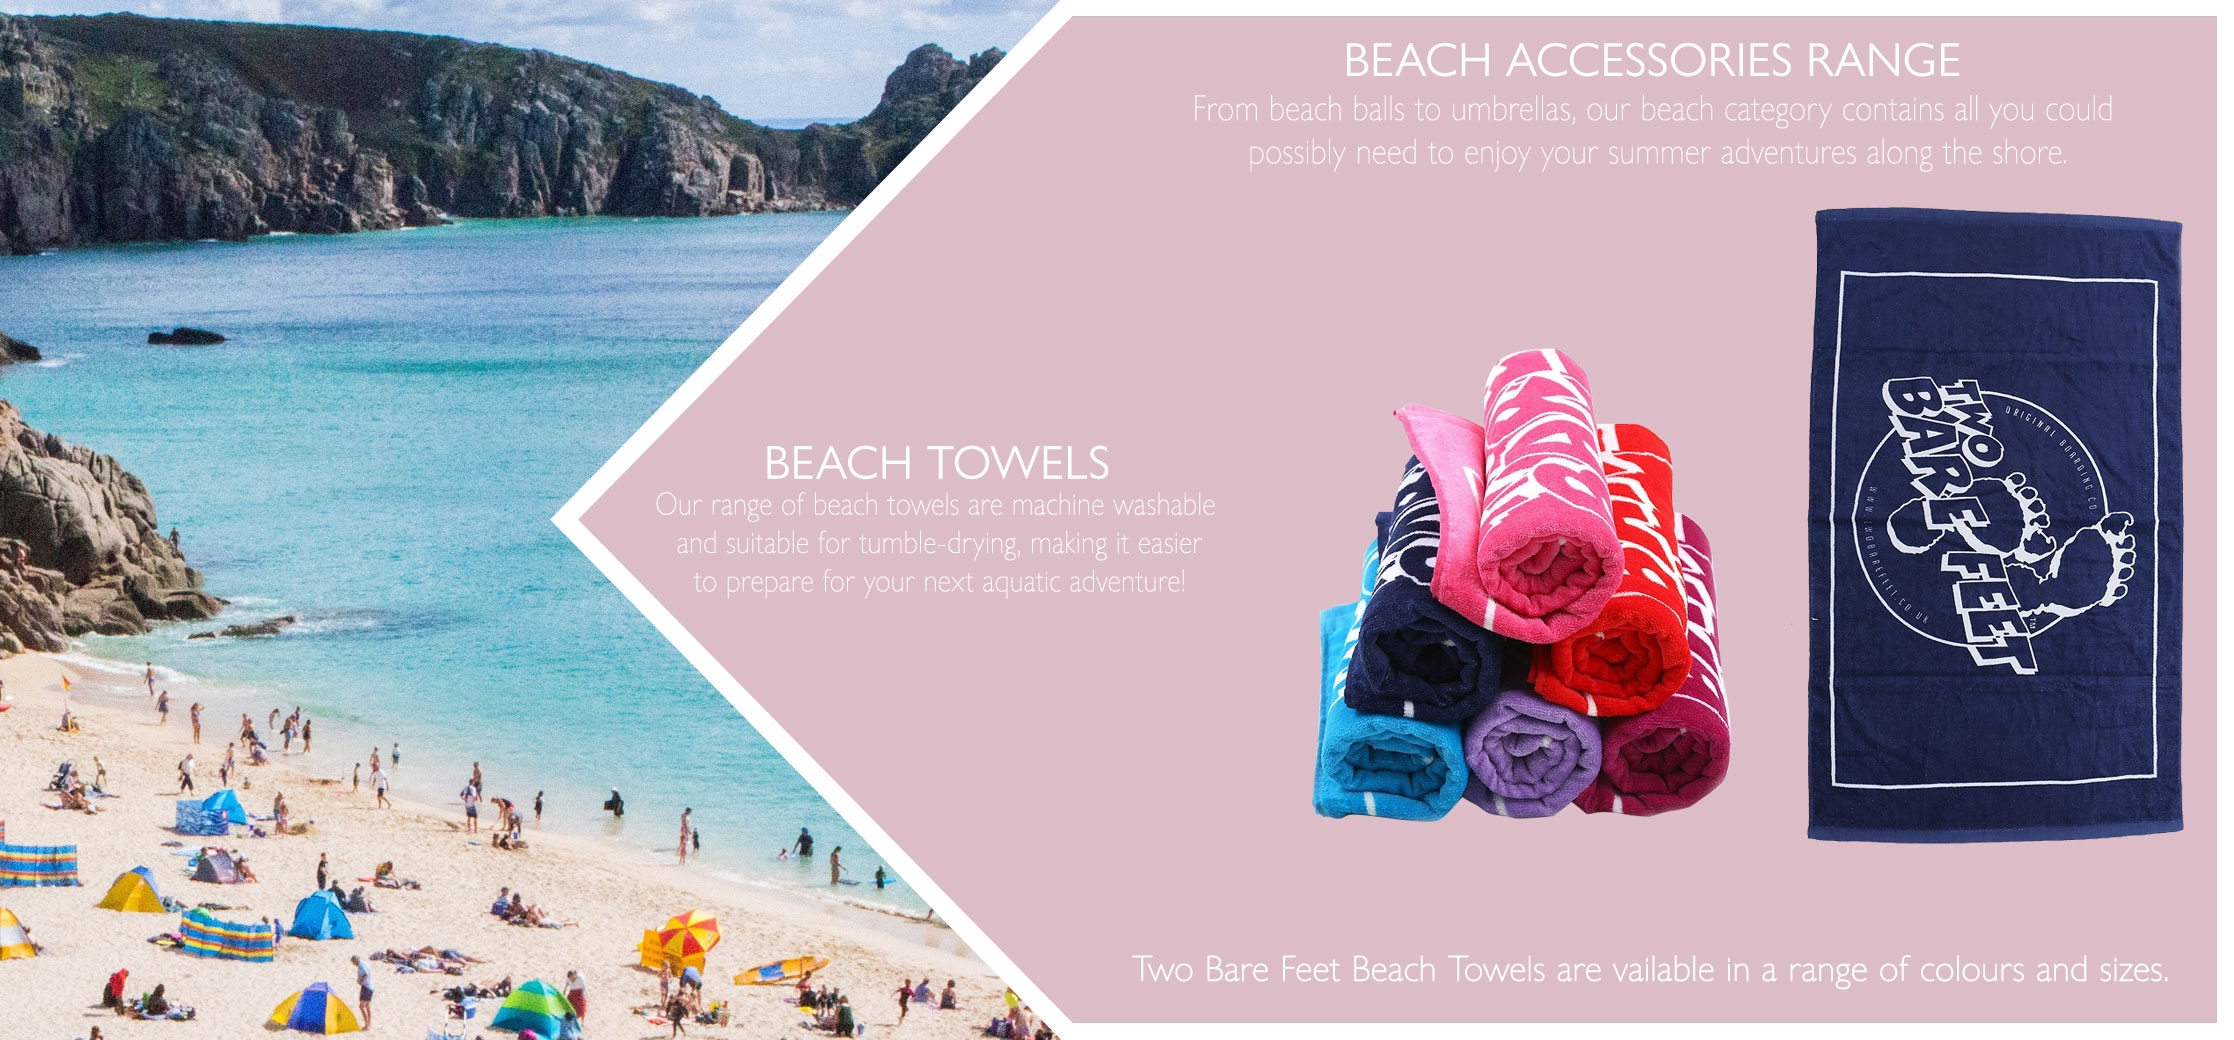 Beach towels information